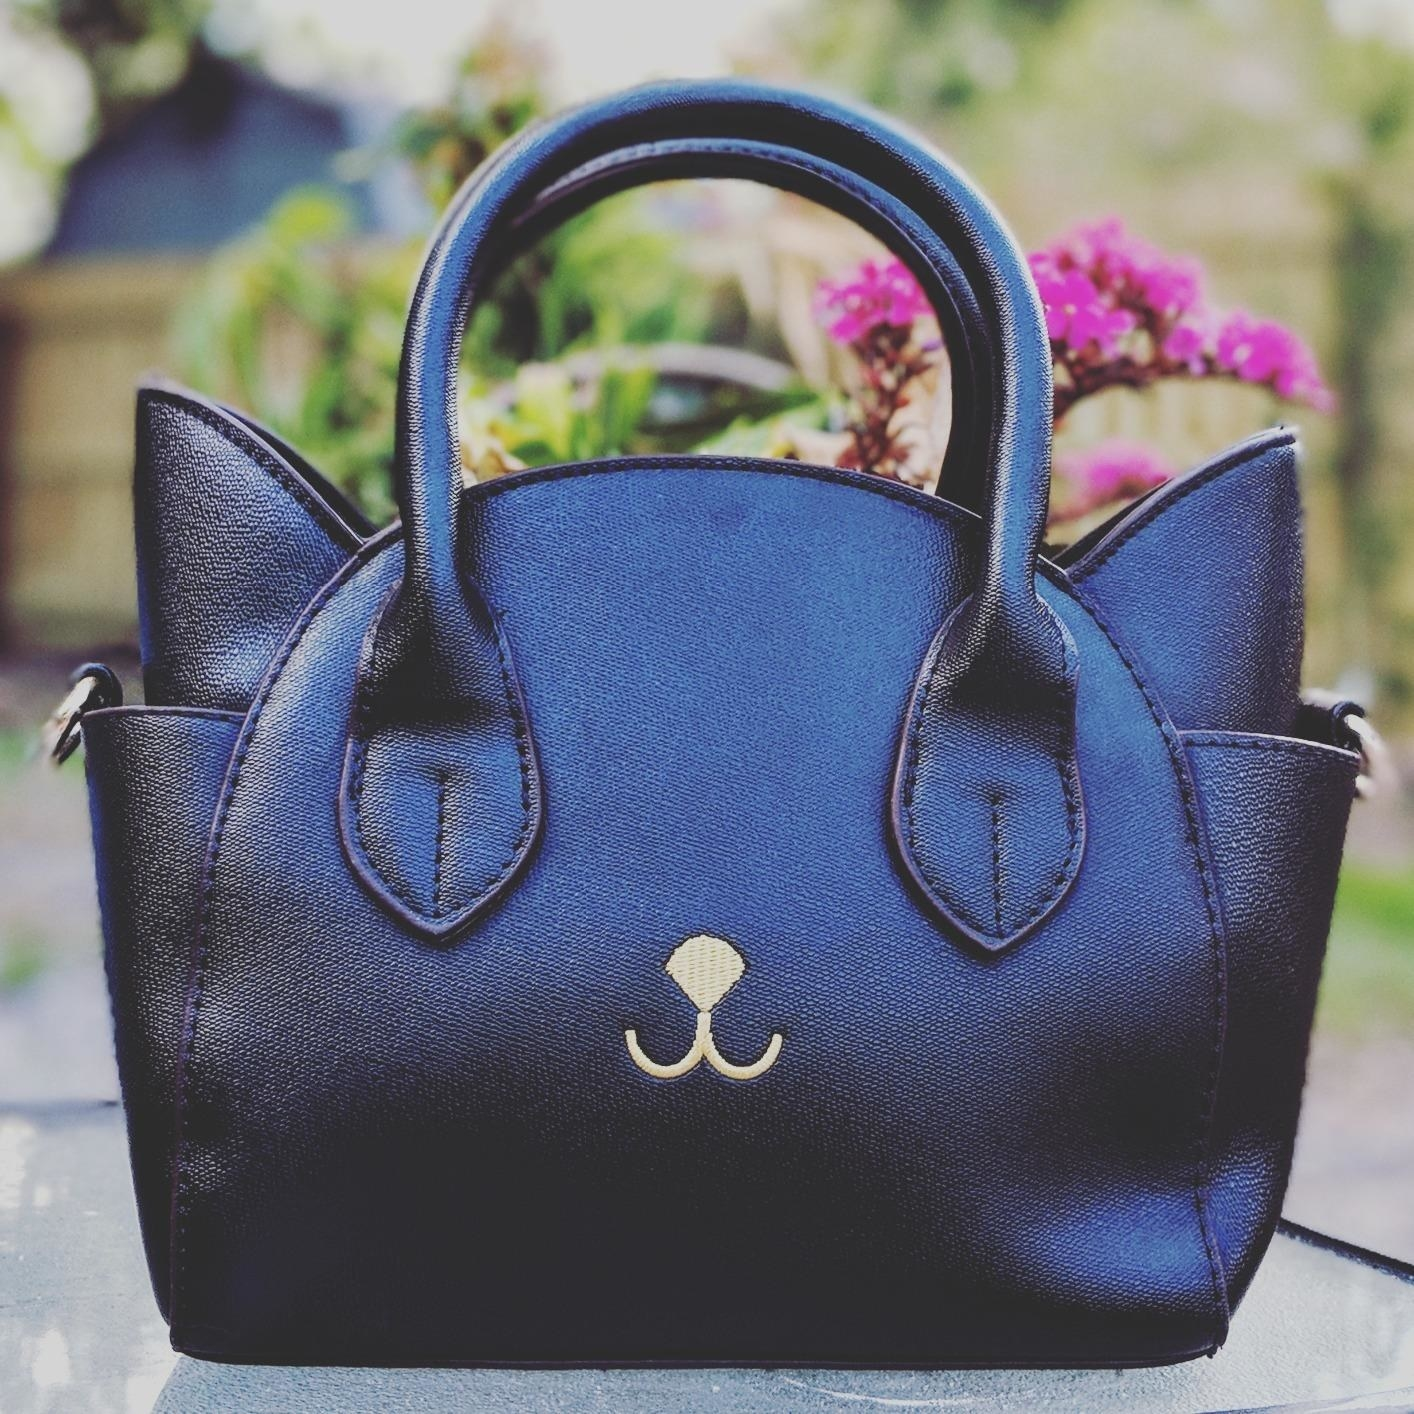 Reviewer pic of the purse in black with ears on either side and pockets below them and a small white nose and mouth on the front with the ends of the straps looking like eyes.